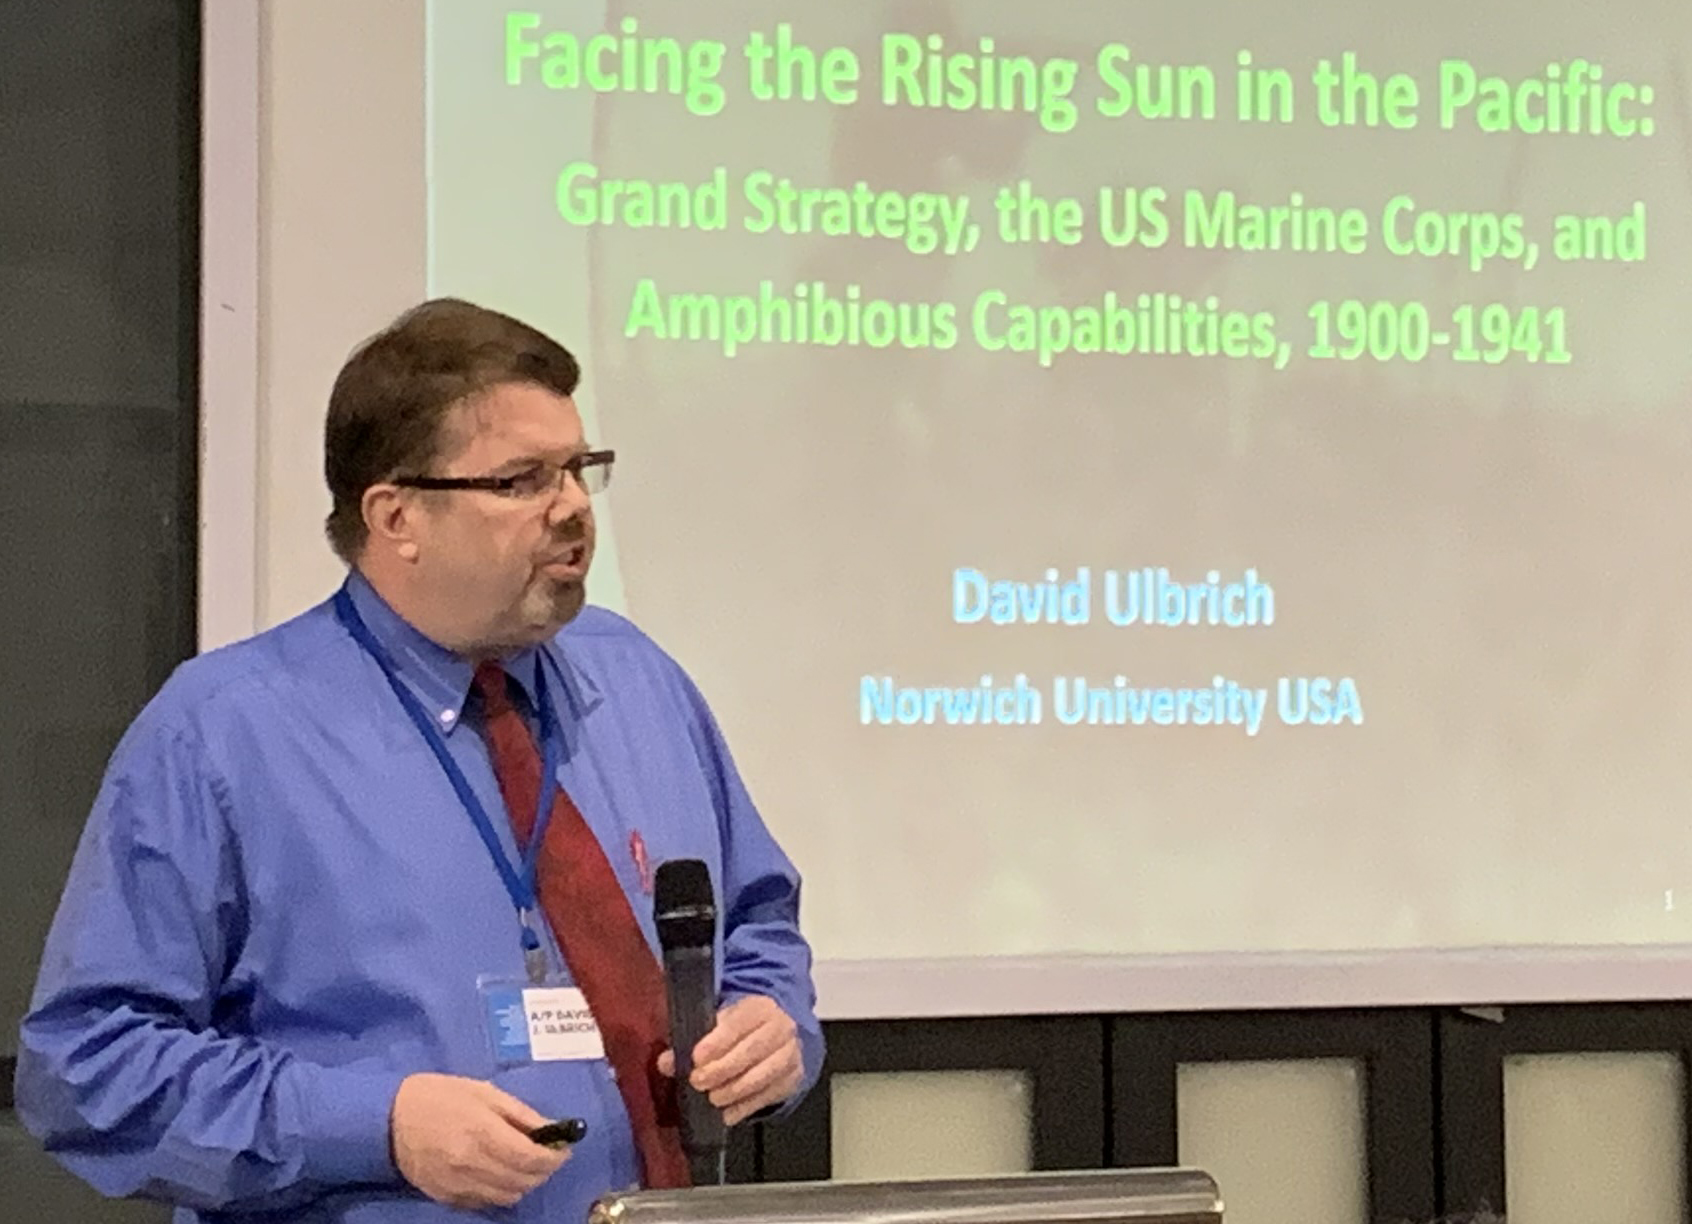 David Ulbrich presenting at a conference